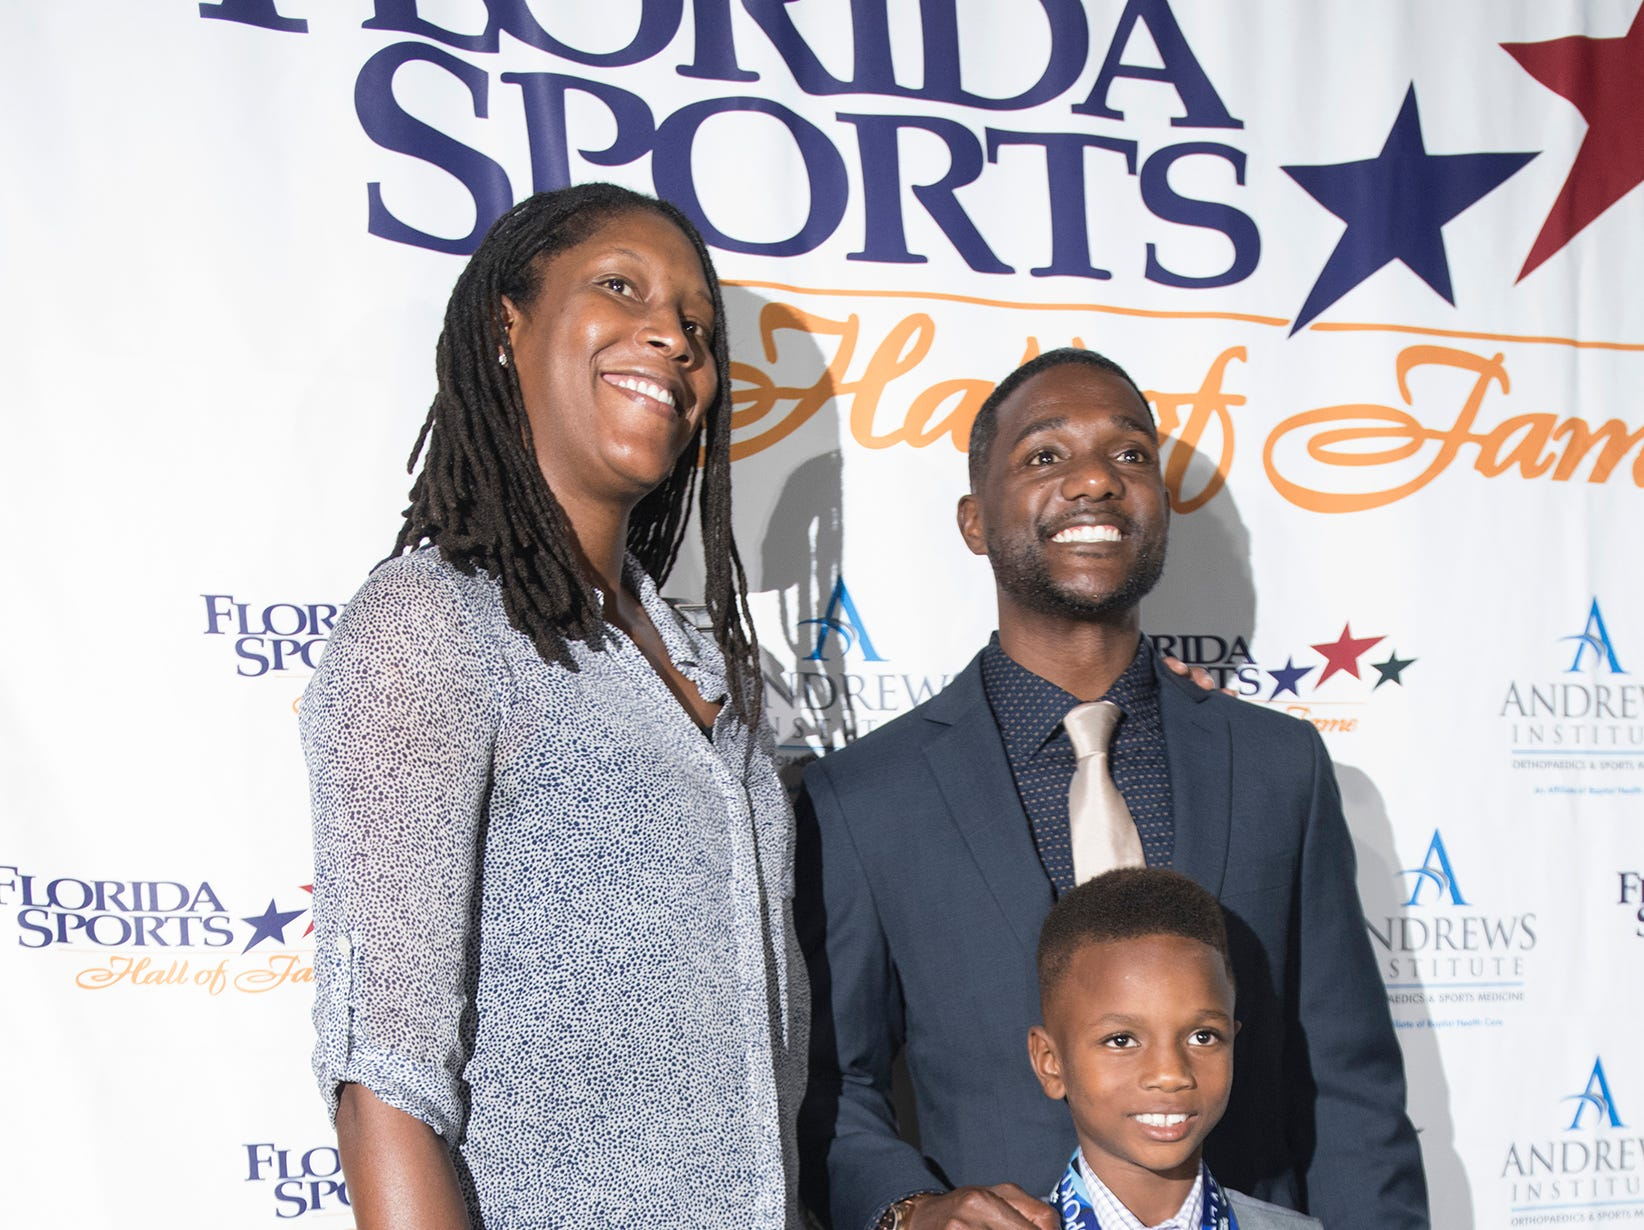 Pensacola own, Michelle Snow and Justin Gatlin, poses for photographs with Pensacola's newest star, 8-year-old Cam Ron Chandler, before the start of Wednesday night's 2018 Florida Sports Hall of Fame Enshrinement Ceremony at the National Naval Aviation Museum.